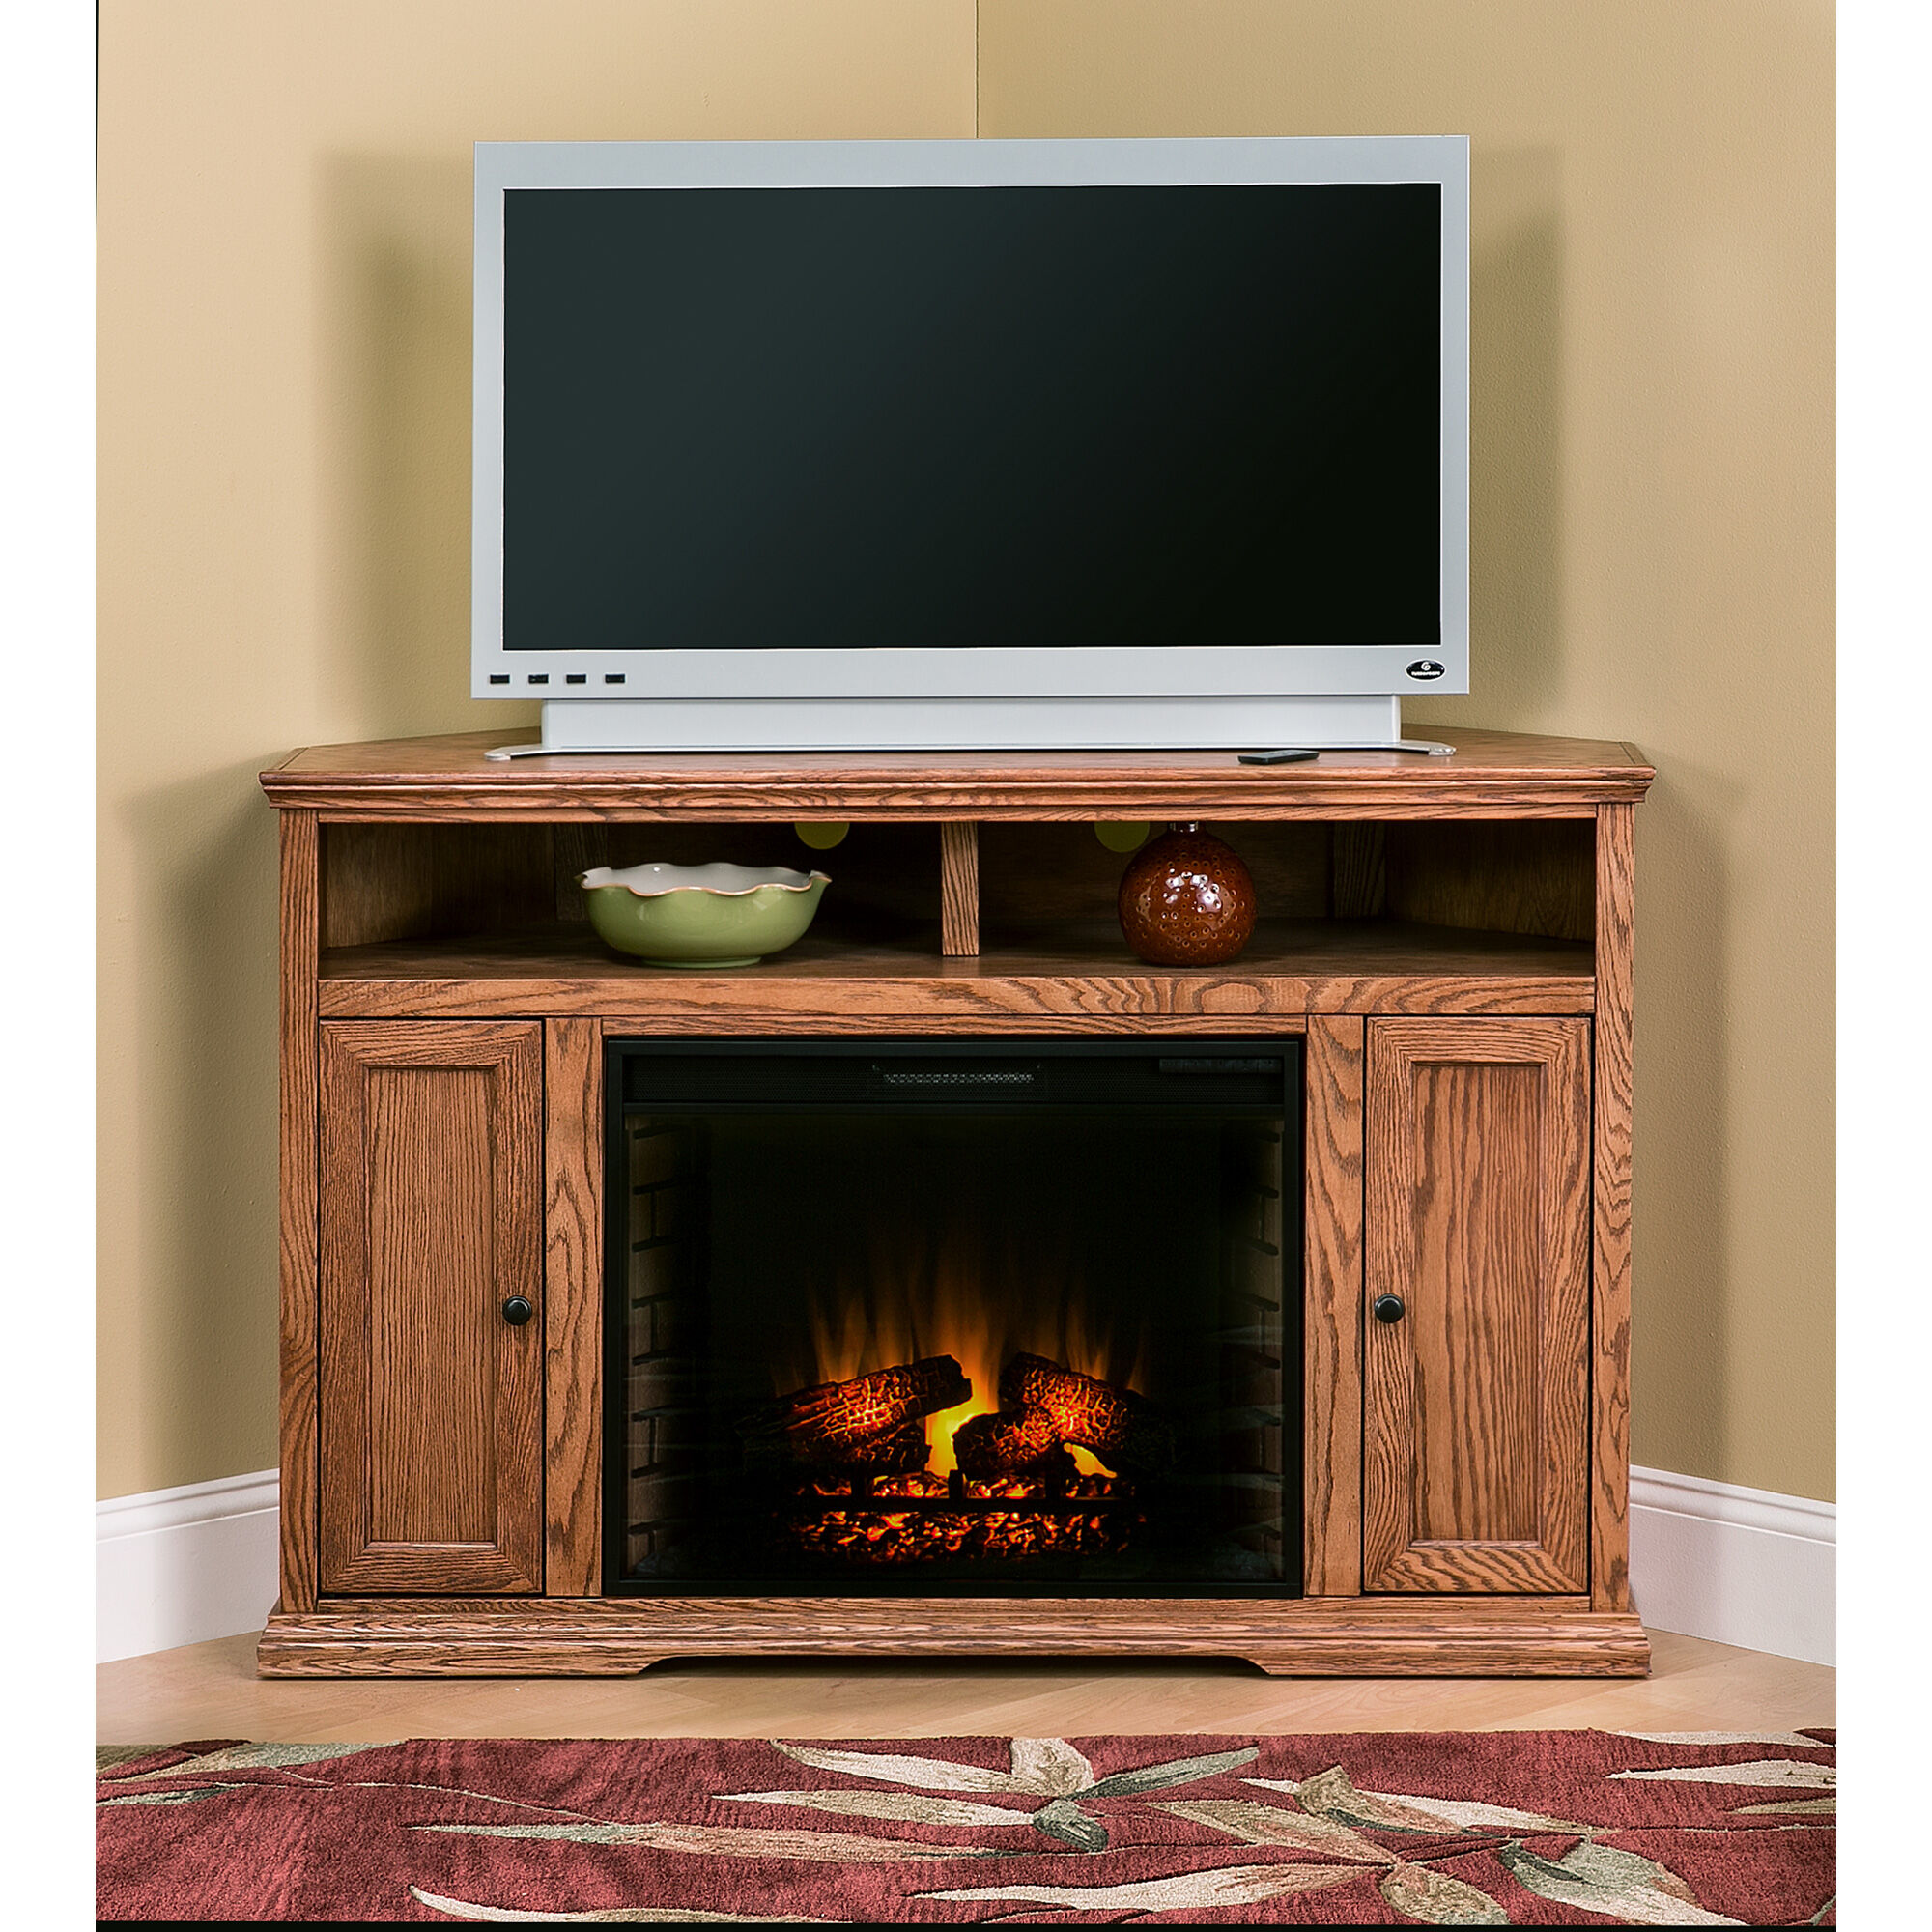 p from steve montibello by buy console media fireplace img silver